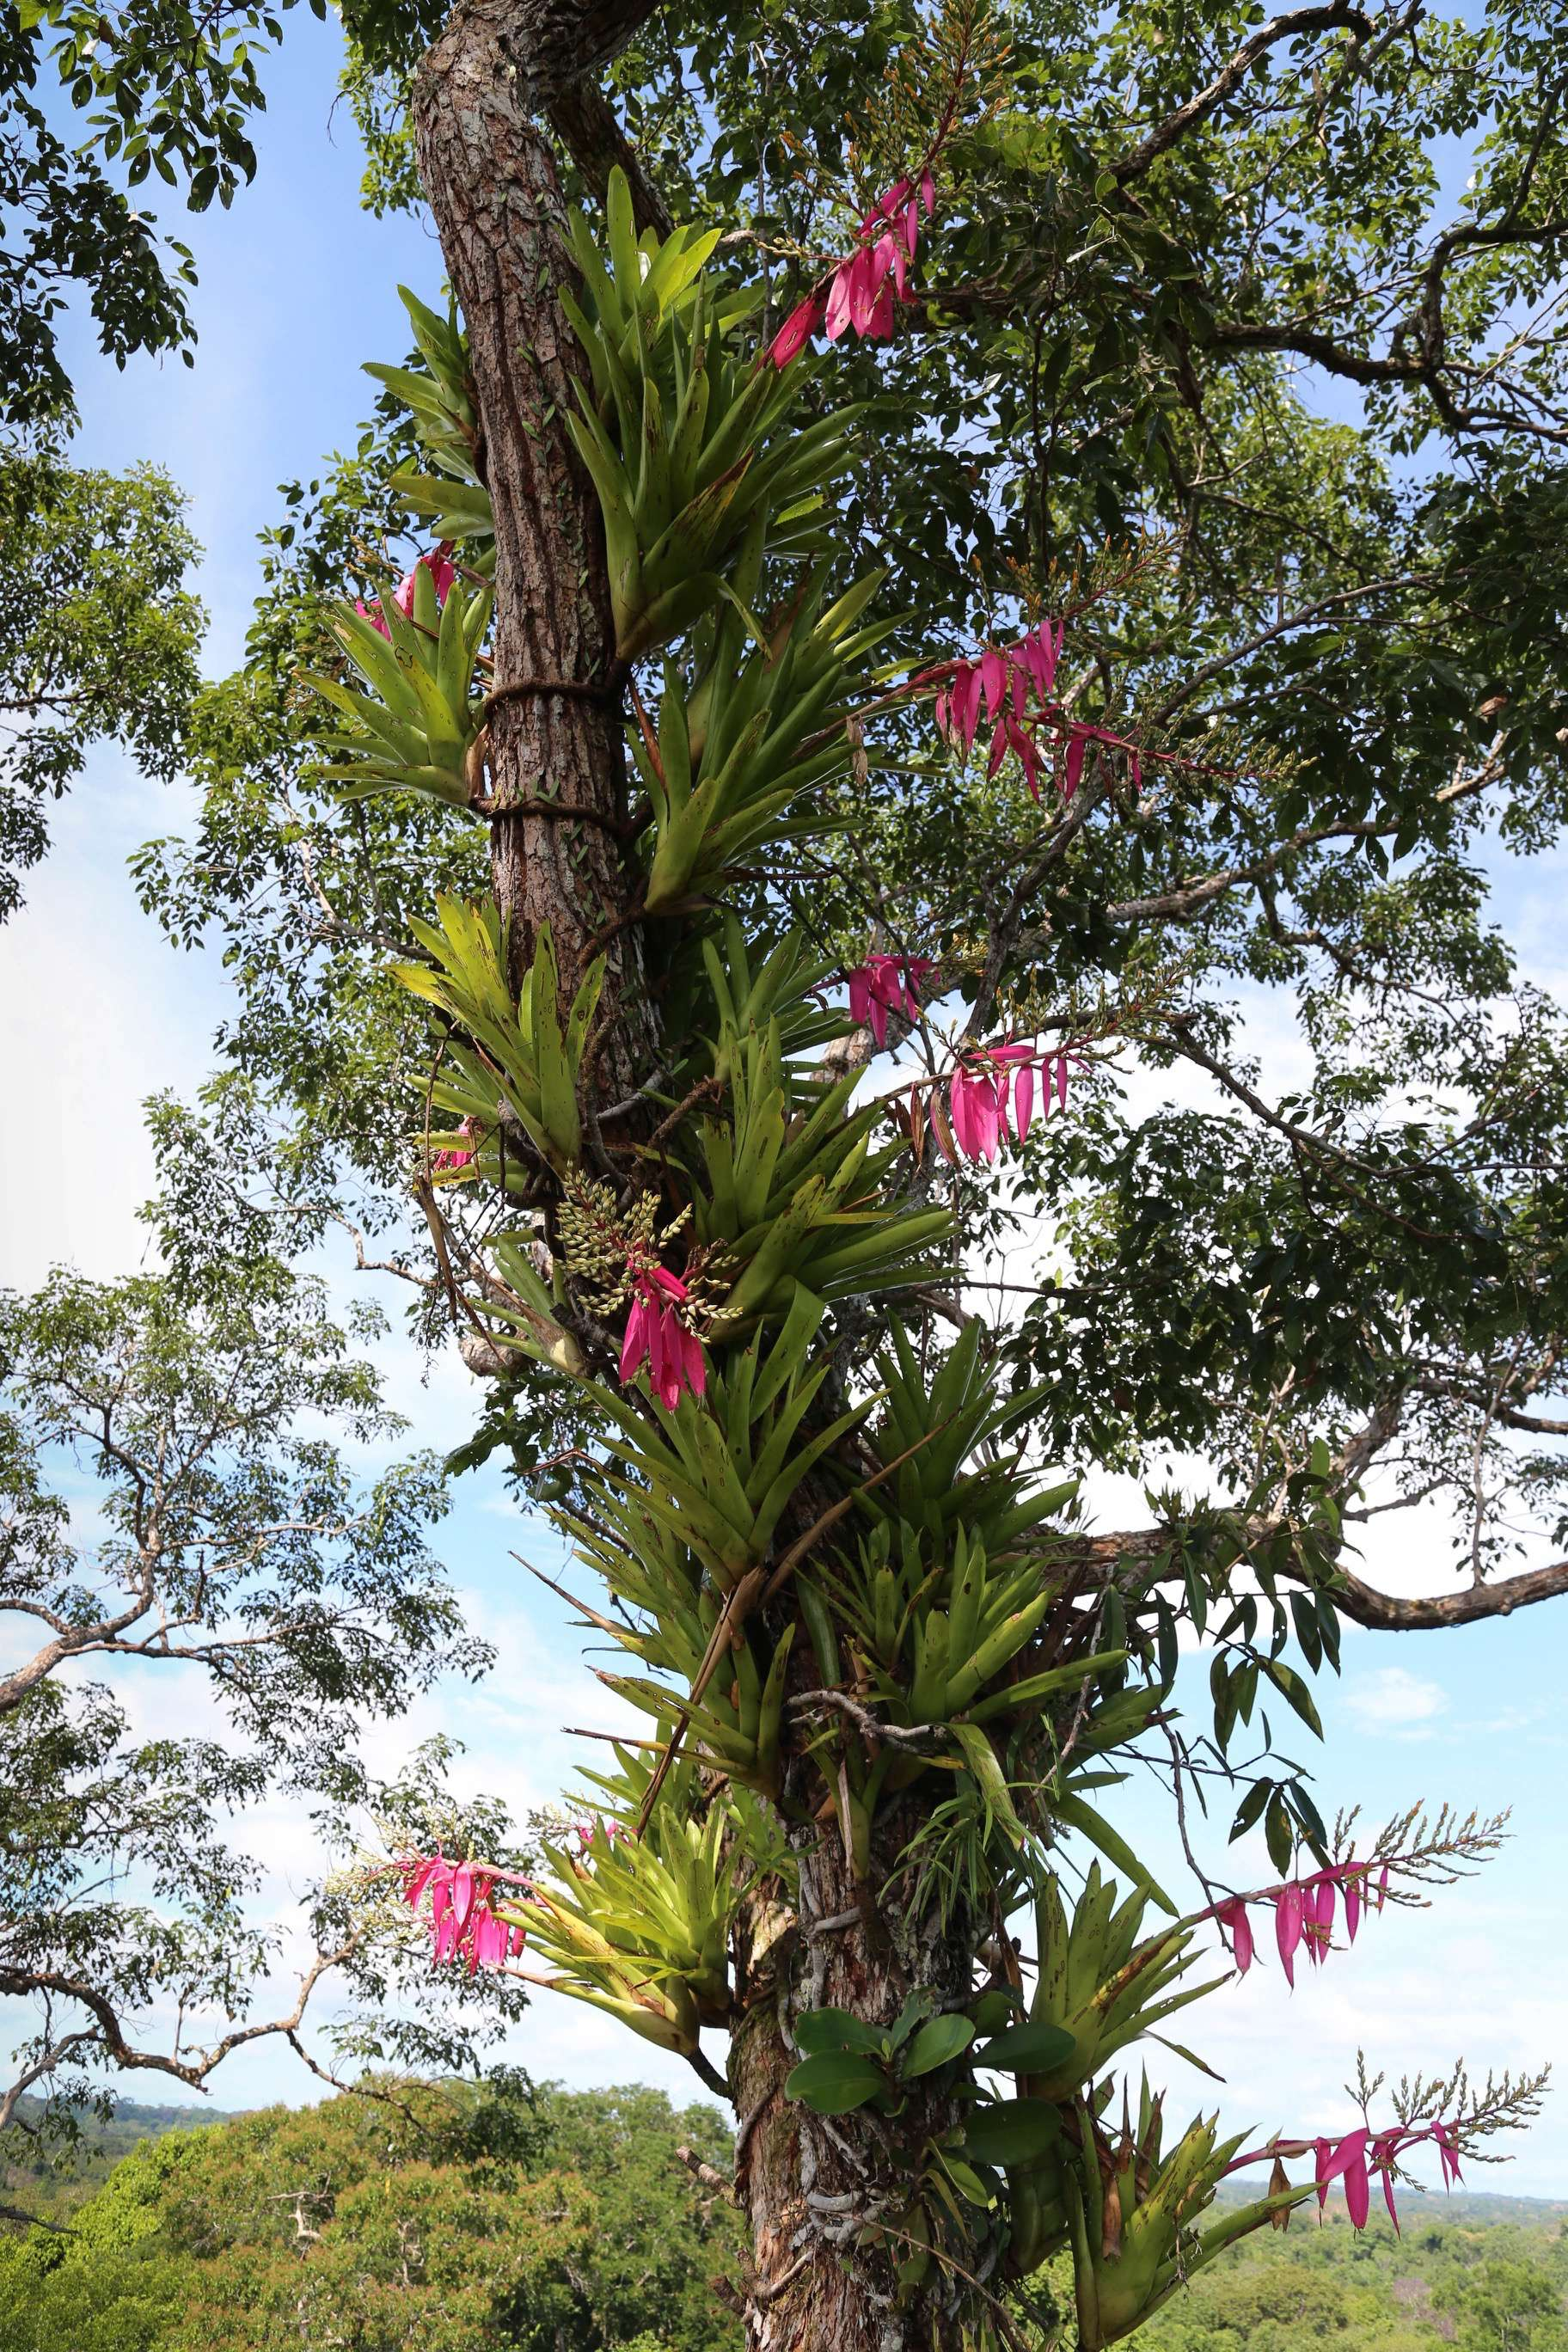 Bromeliads have claimed a portion of this tree trunk high in the jungle canopy.